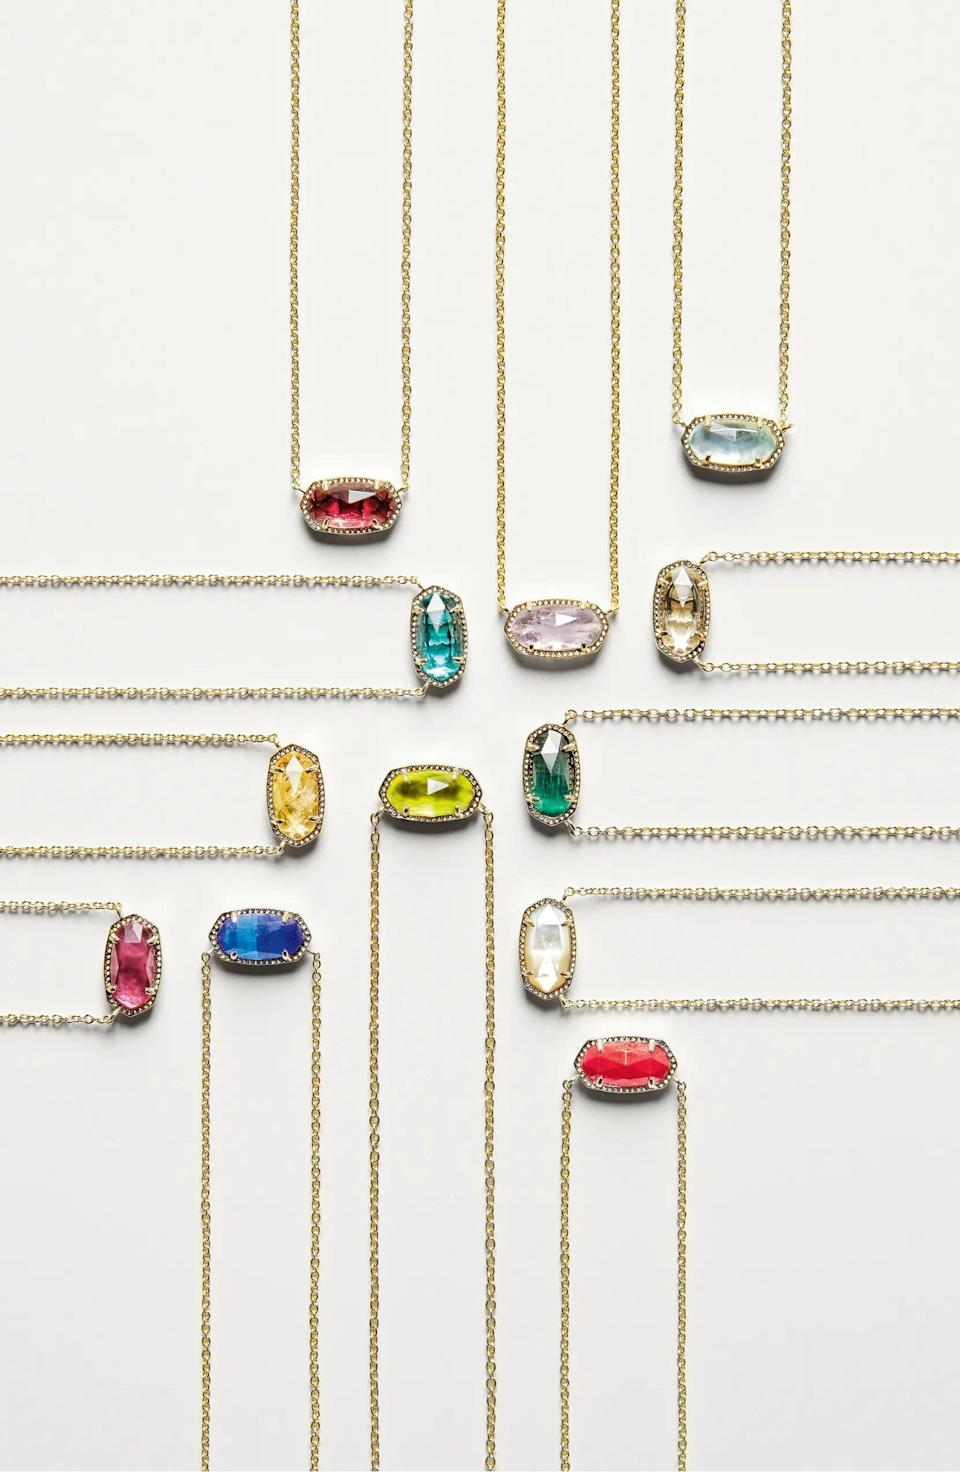 <p>Make someone feel special with the <span>Kendra Scott Elisa Birthstone Pendant Necklace</span> ($50 - $60). They make for the prettiest, most exciting stocking stuffers.</p>